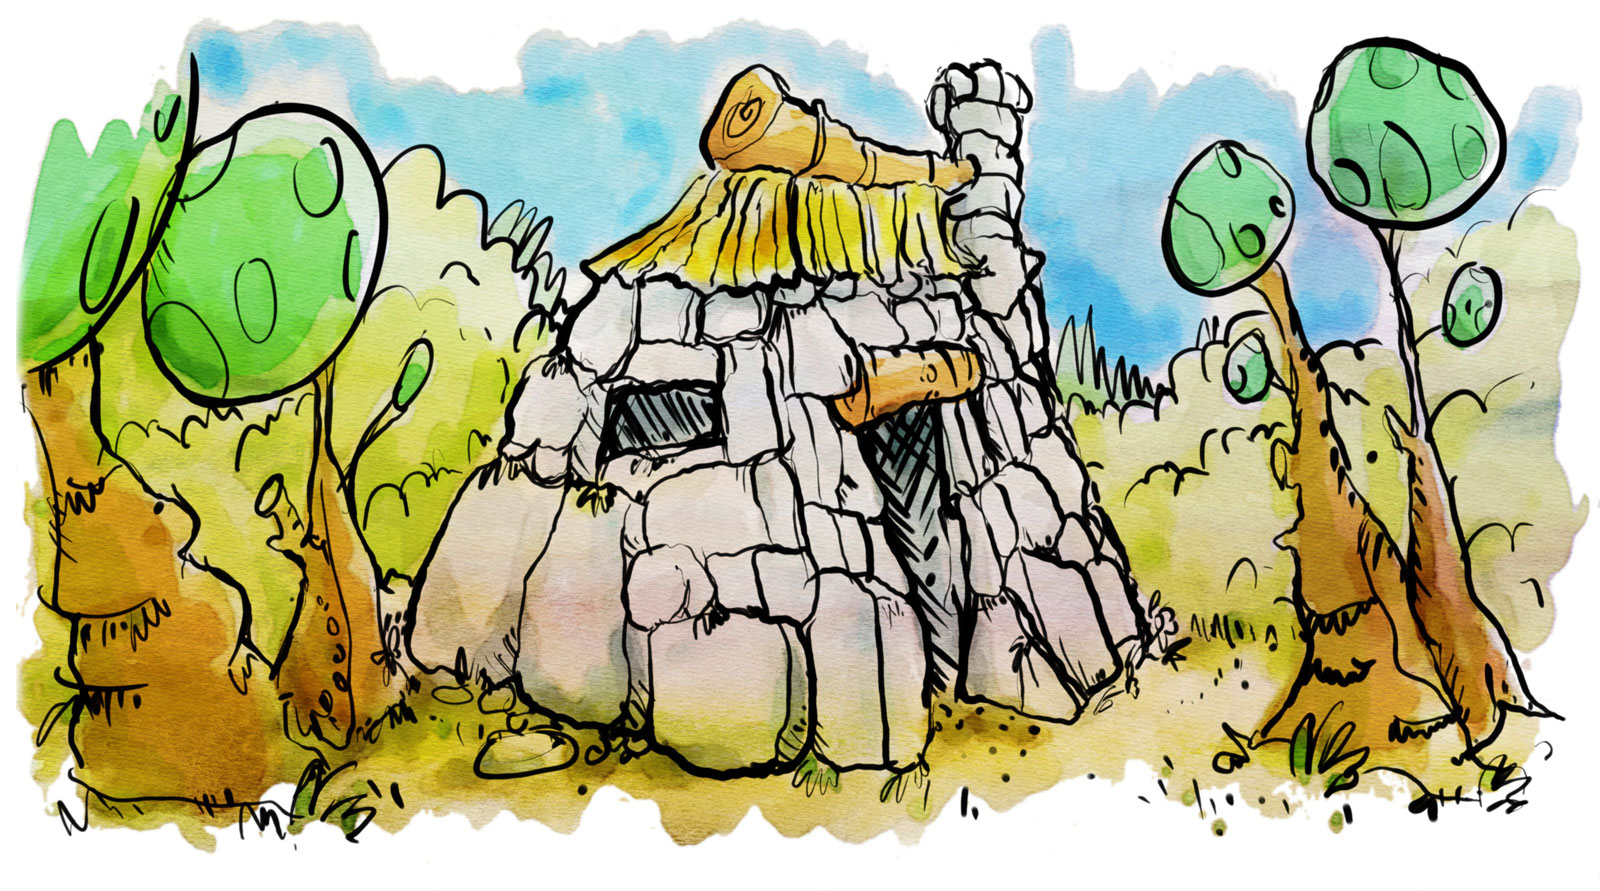 stone house childrens book illustration